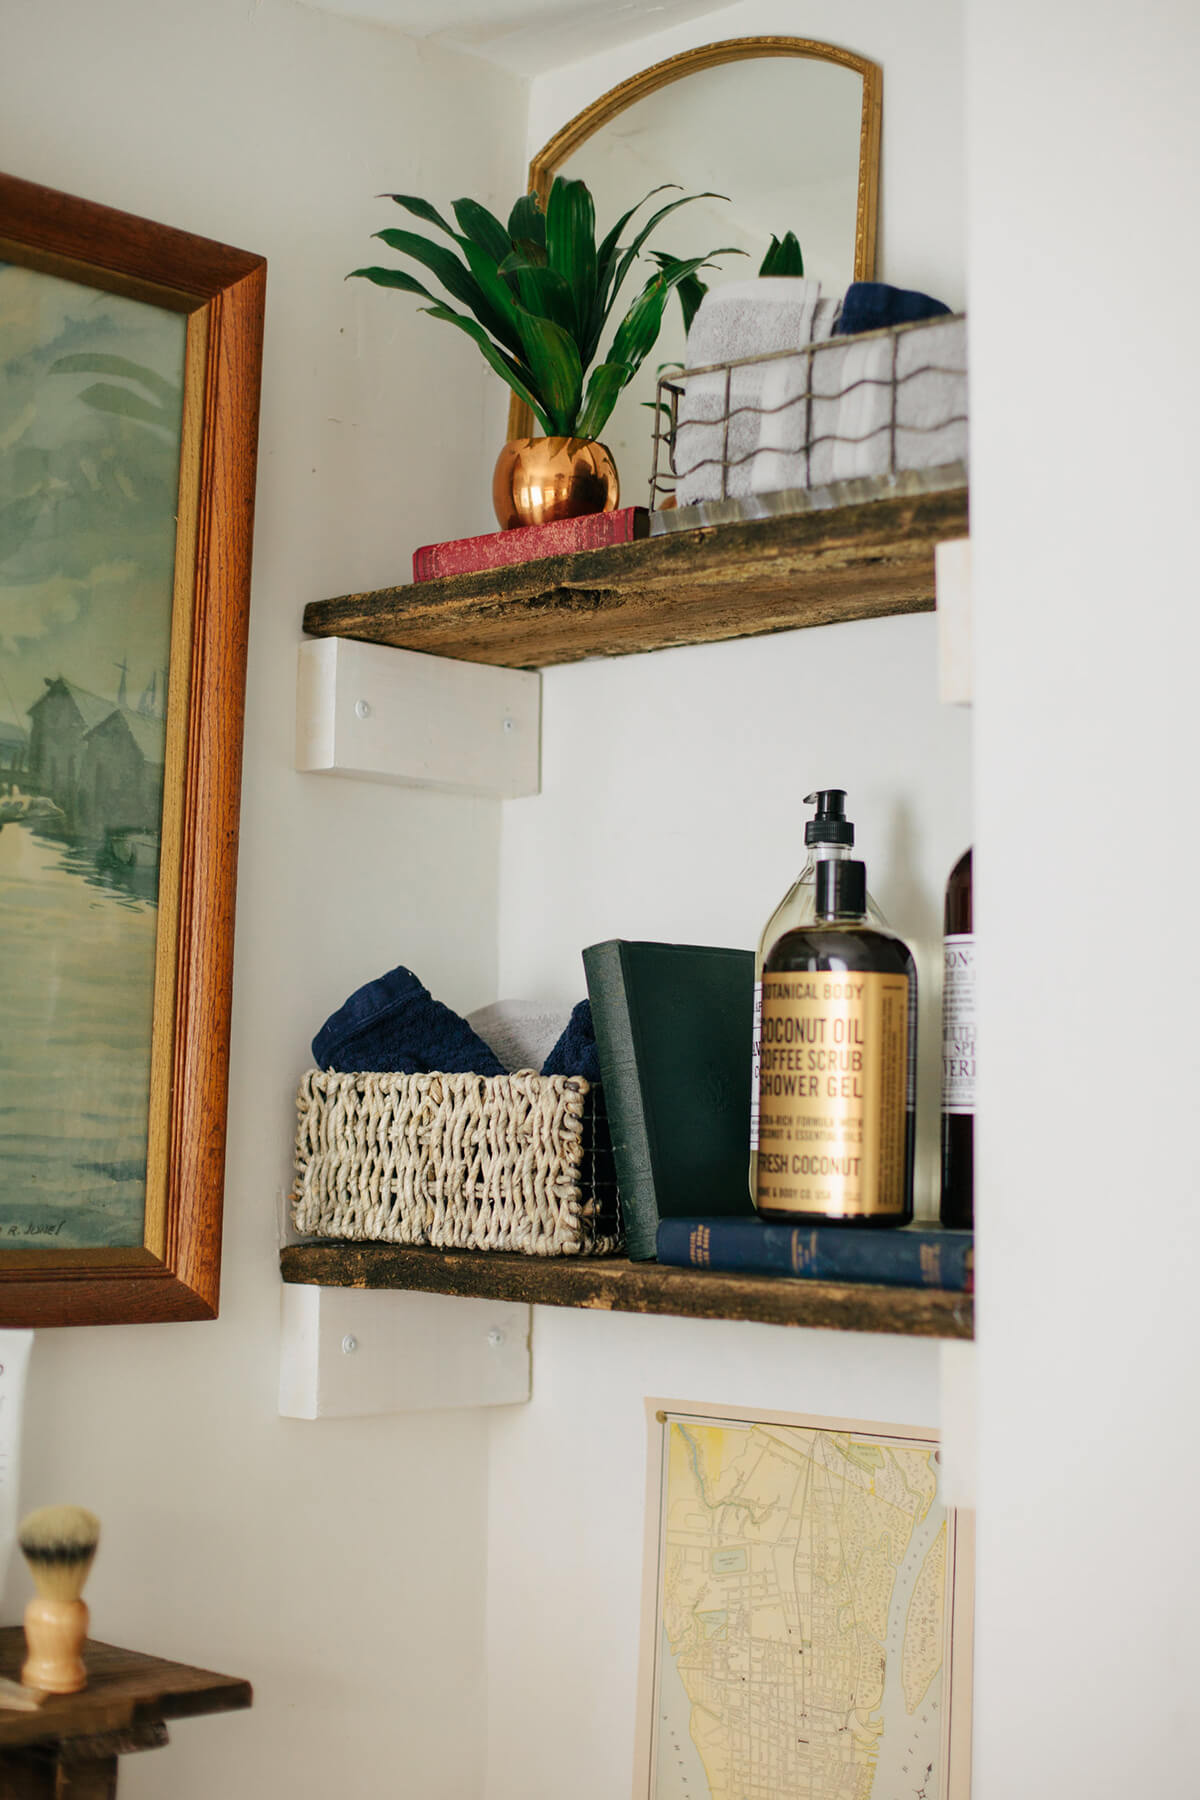 Full of Love and Character Wooden Bath Shelves Nook